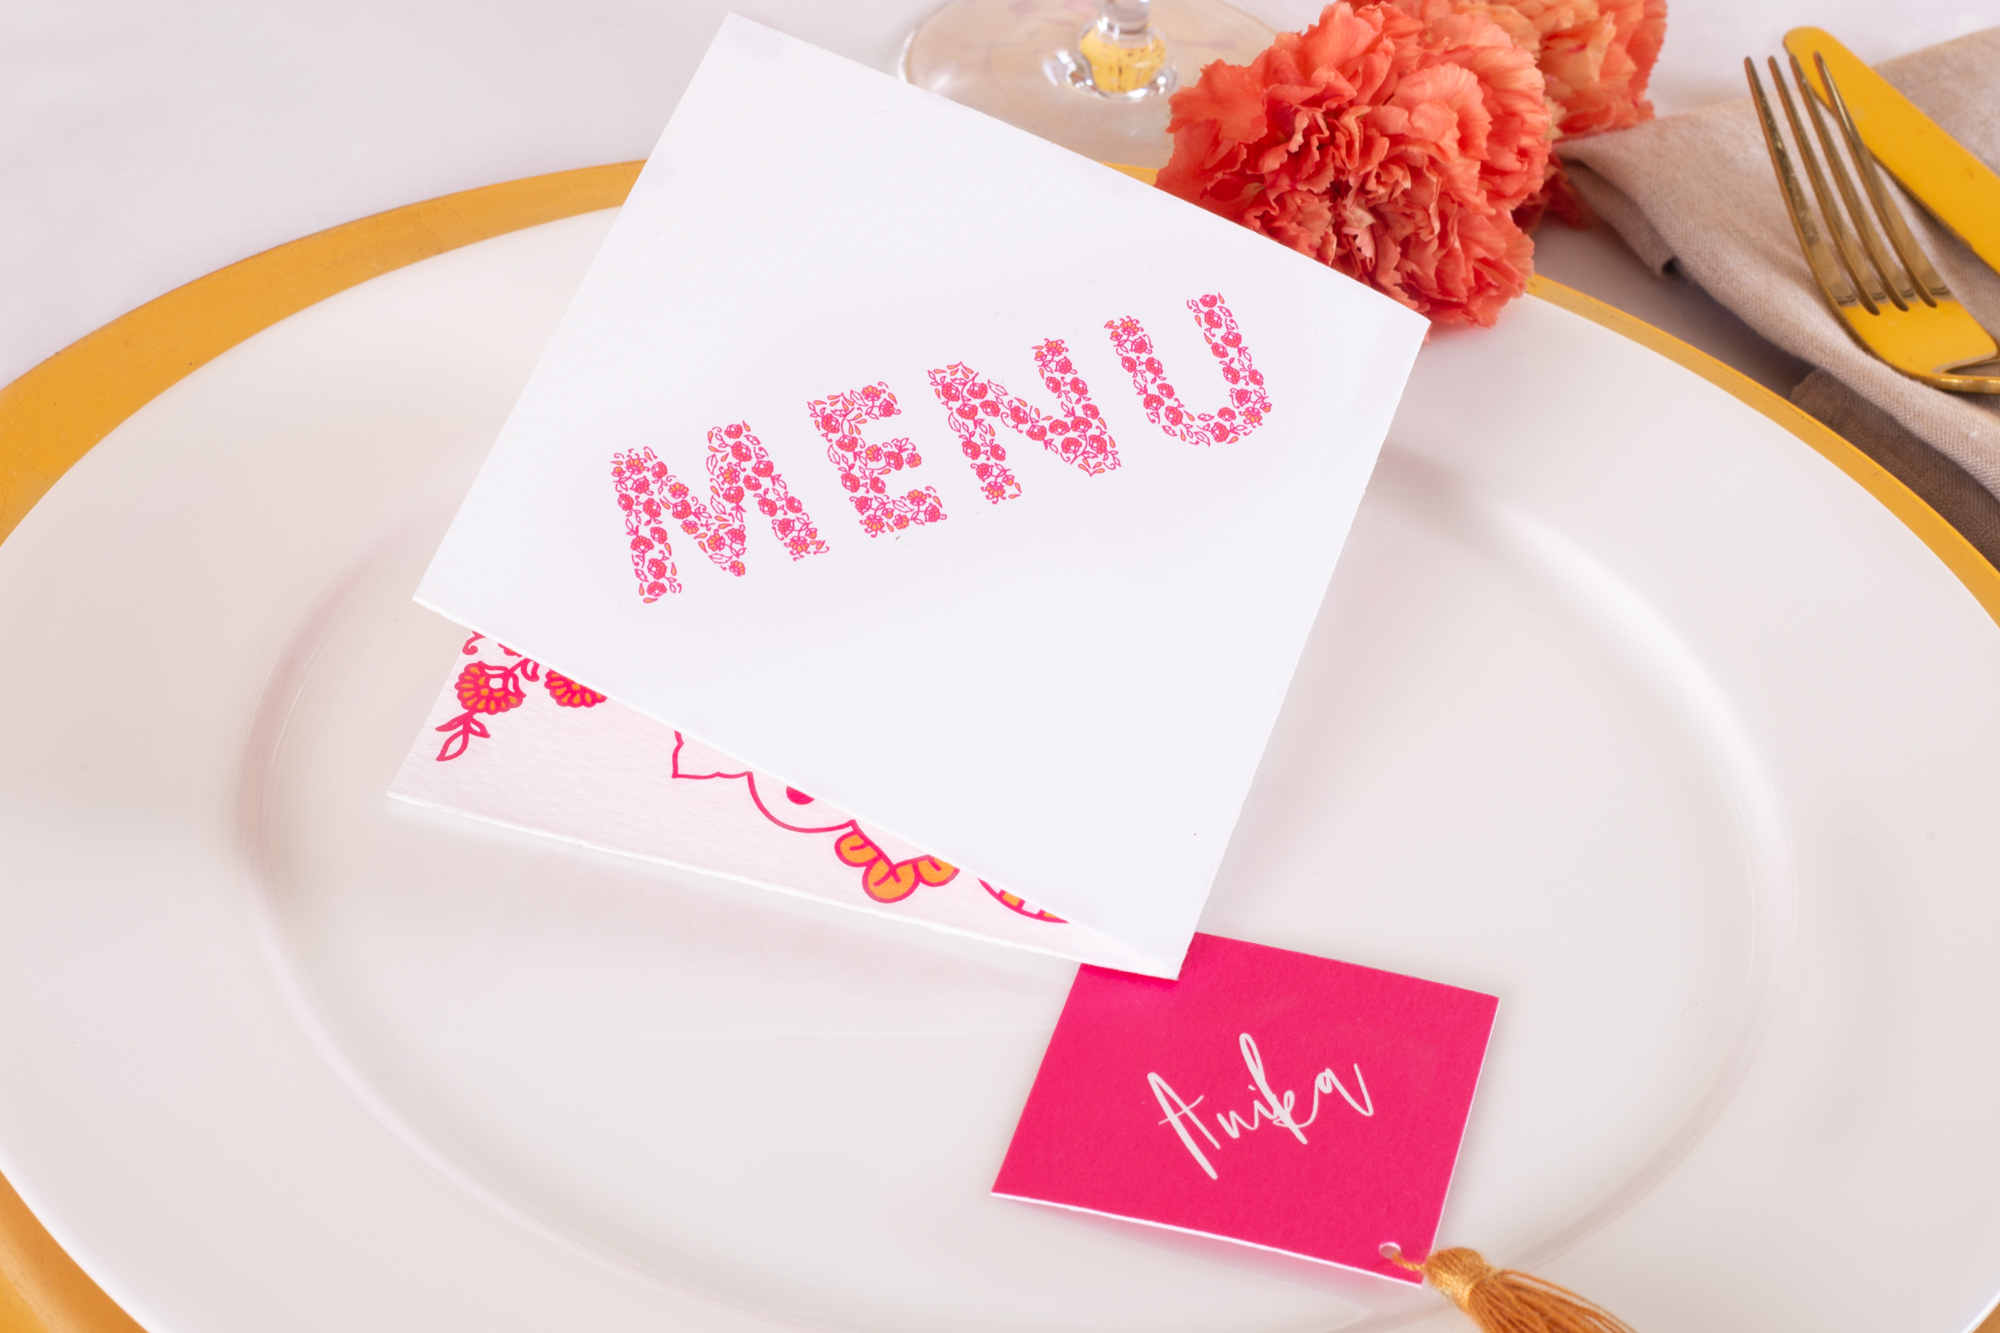 Modern Indian Inspired, untraditional, wedding styled shoot table styling and stationery menu